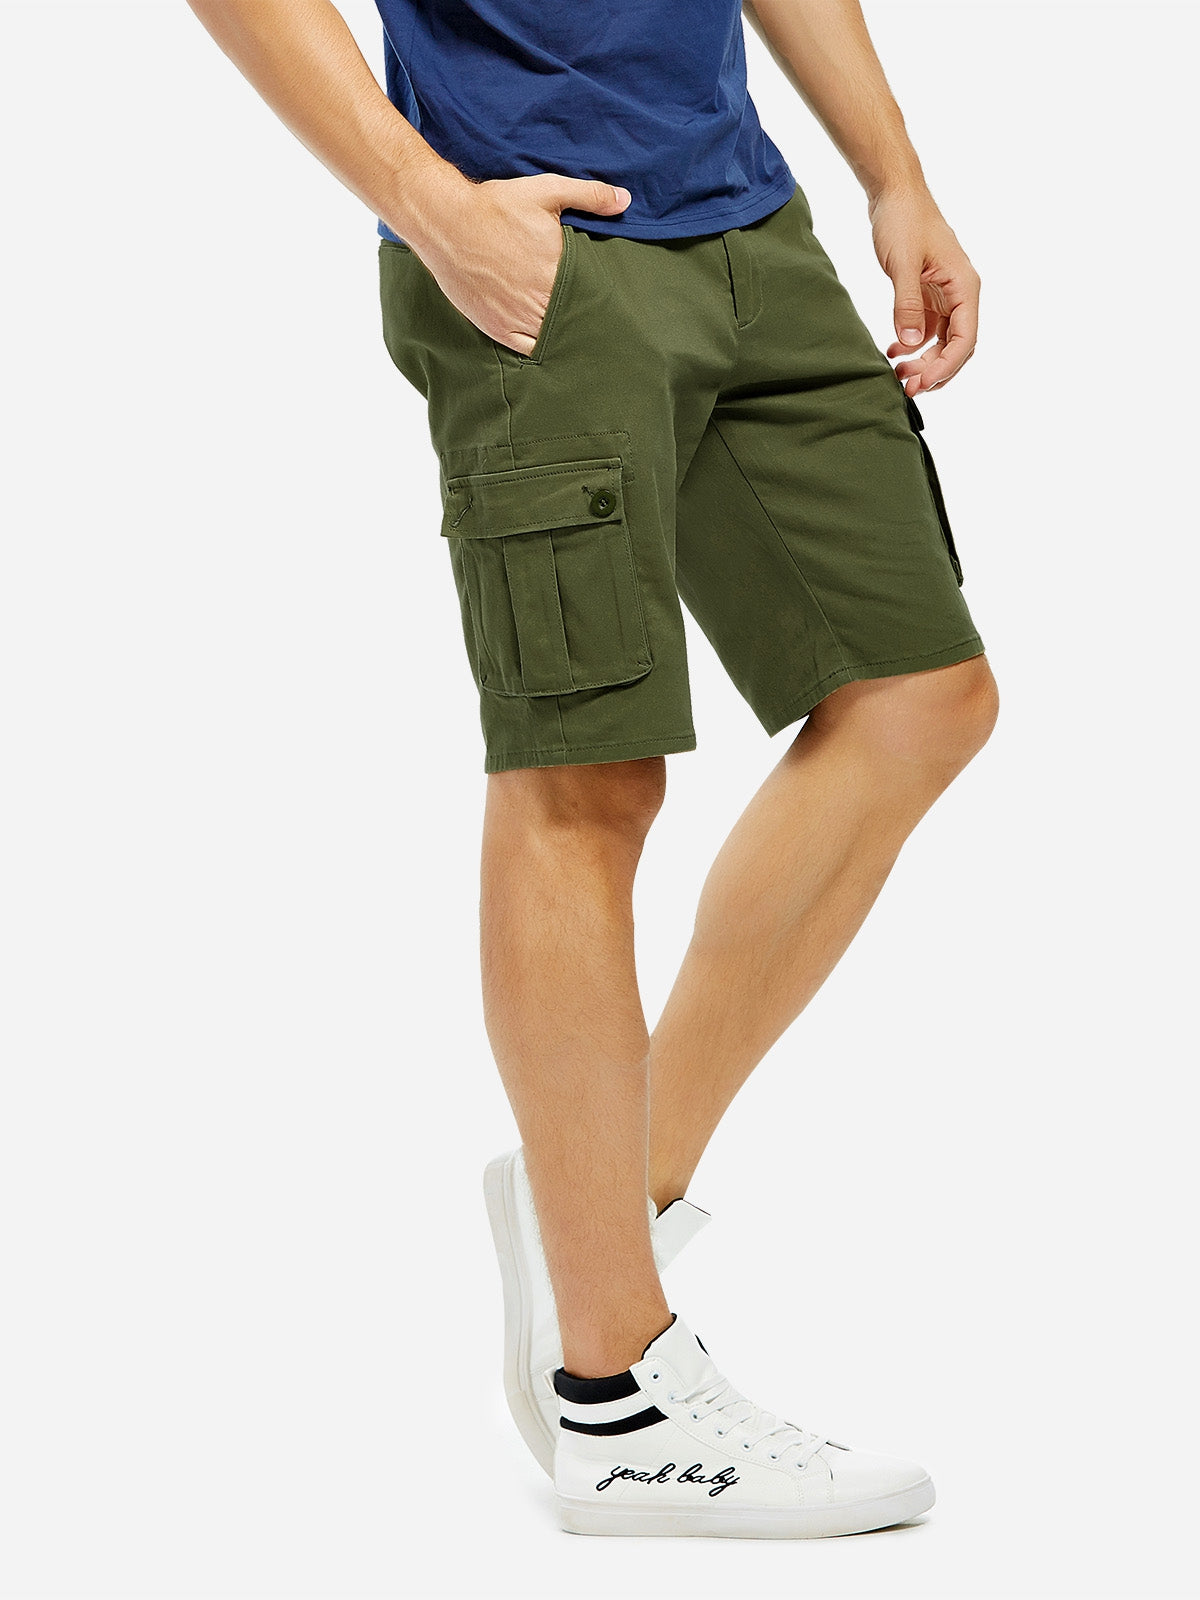 Casual Knee Length Cargo Men Shorts Pants 3587